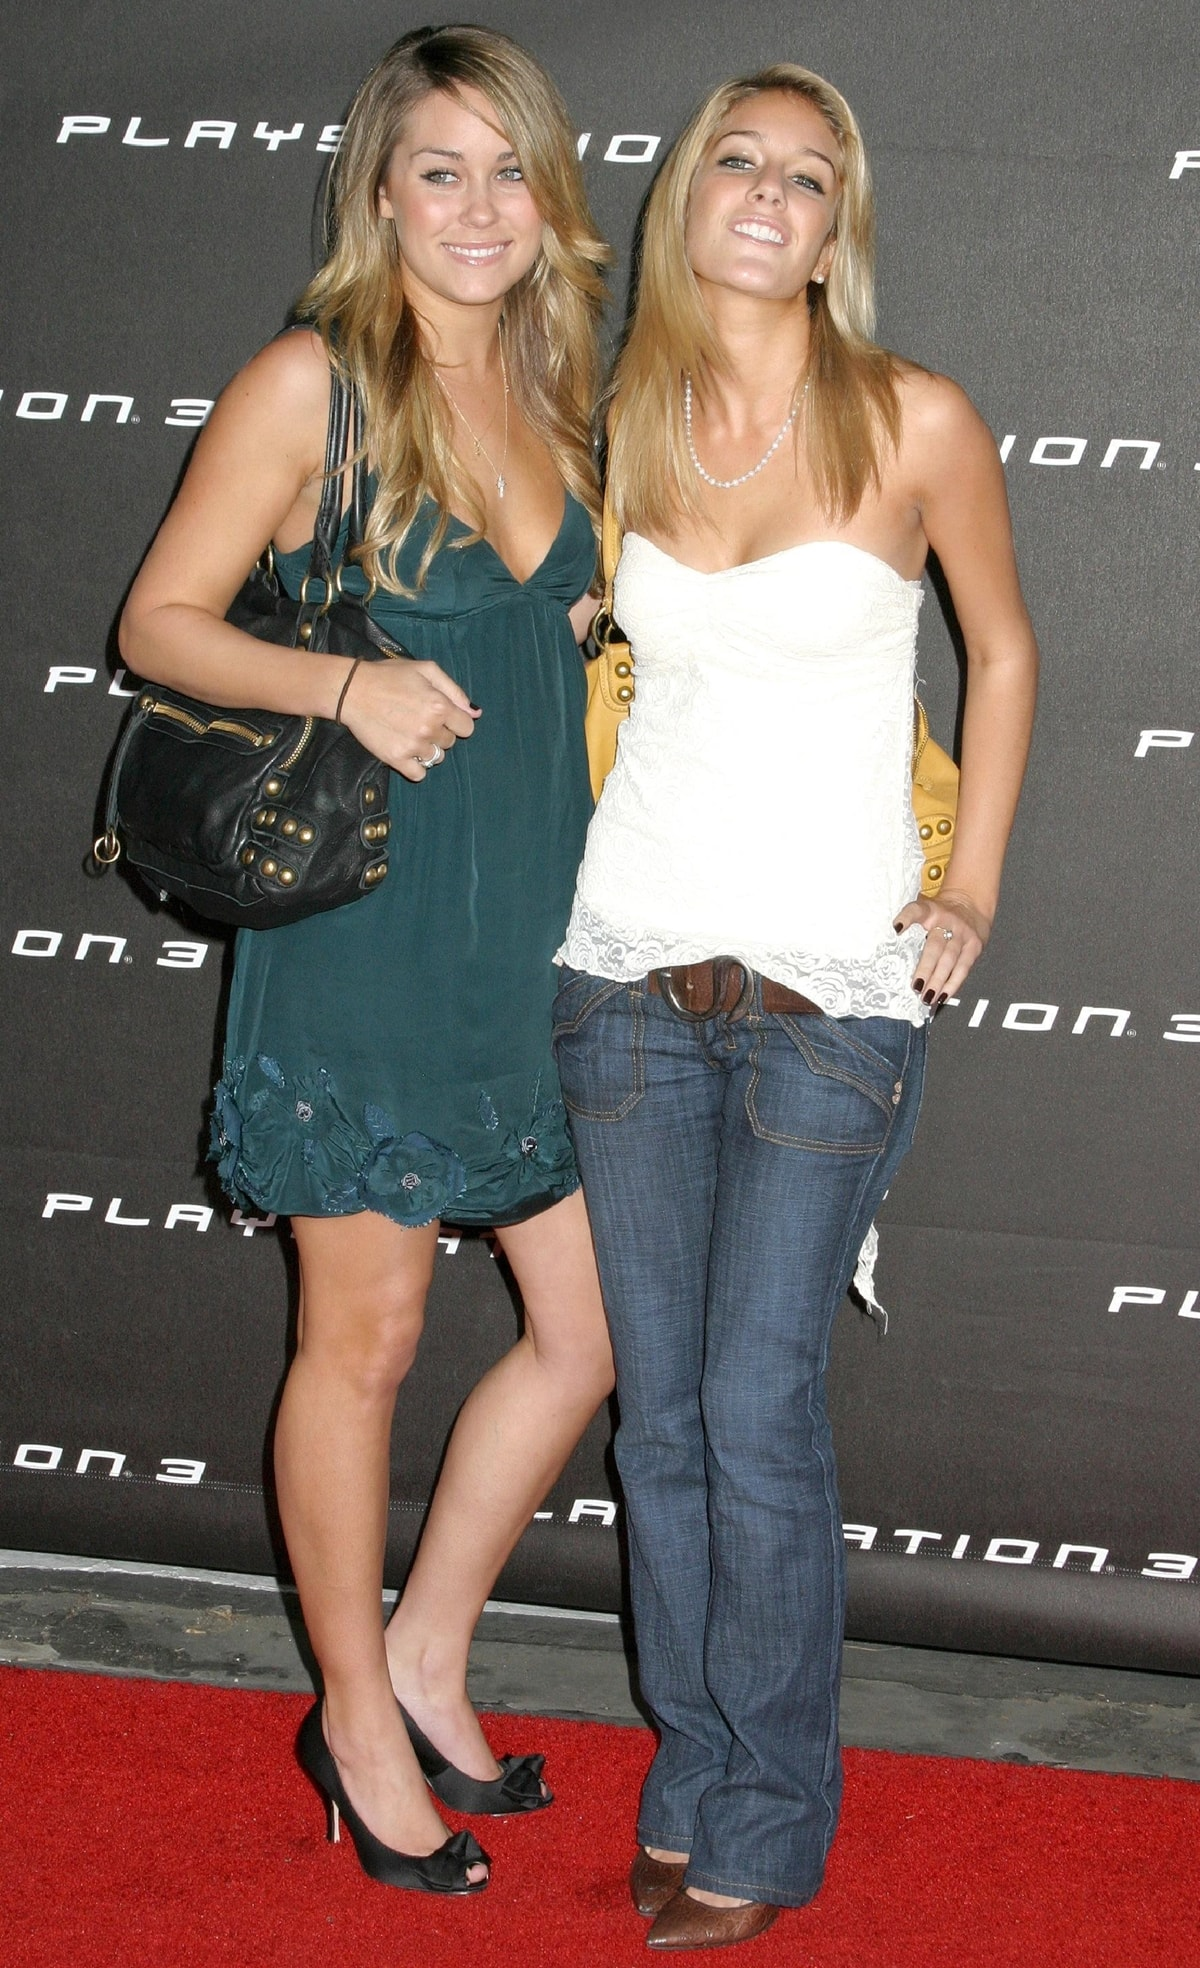 Lauren Conrad and Heidi Montag started feuding after Spencer Pratt tore them apart